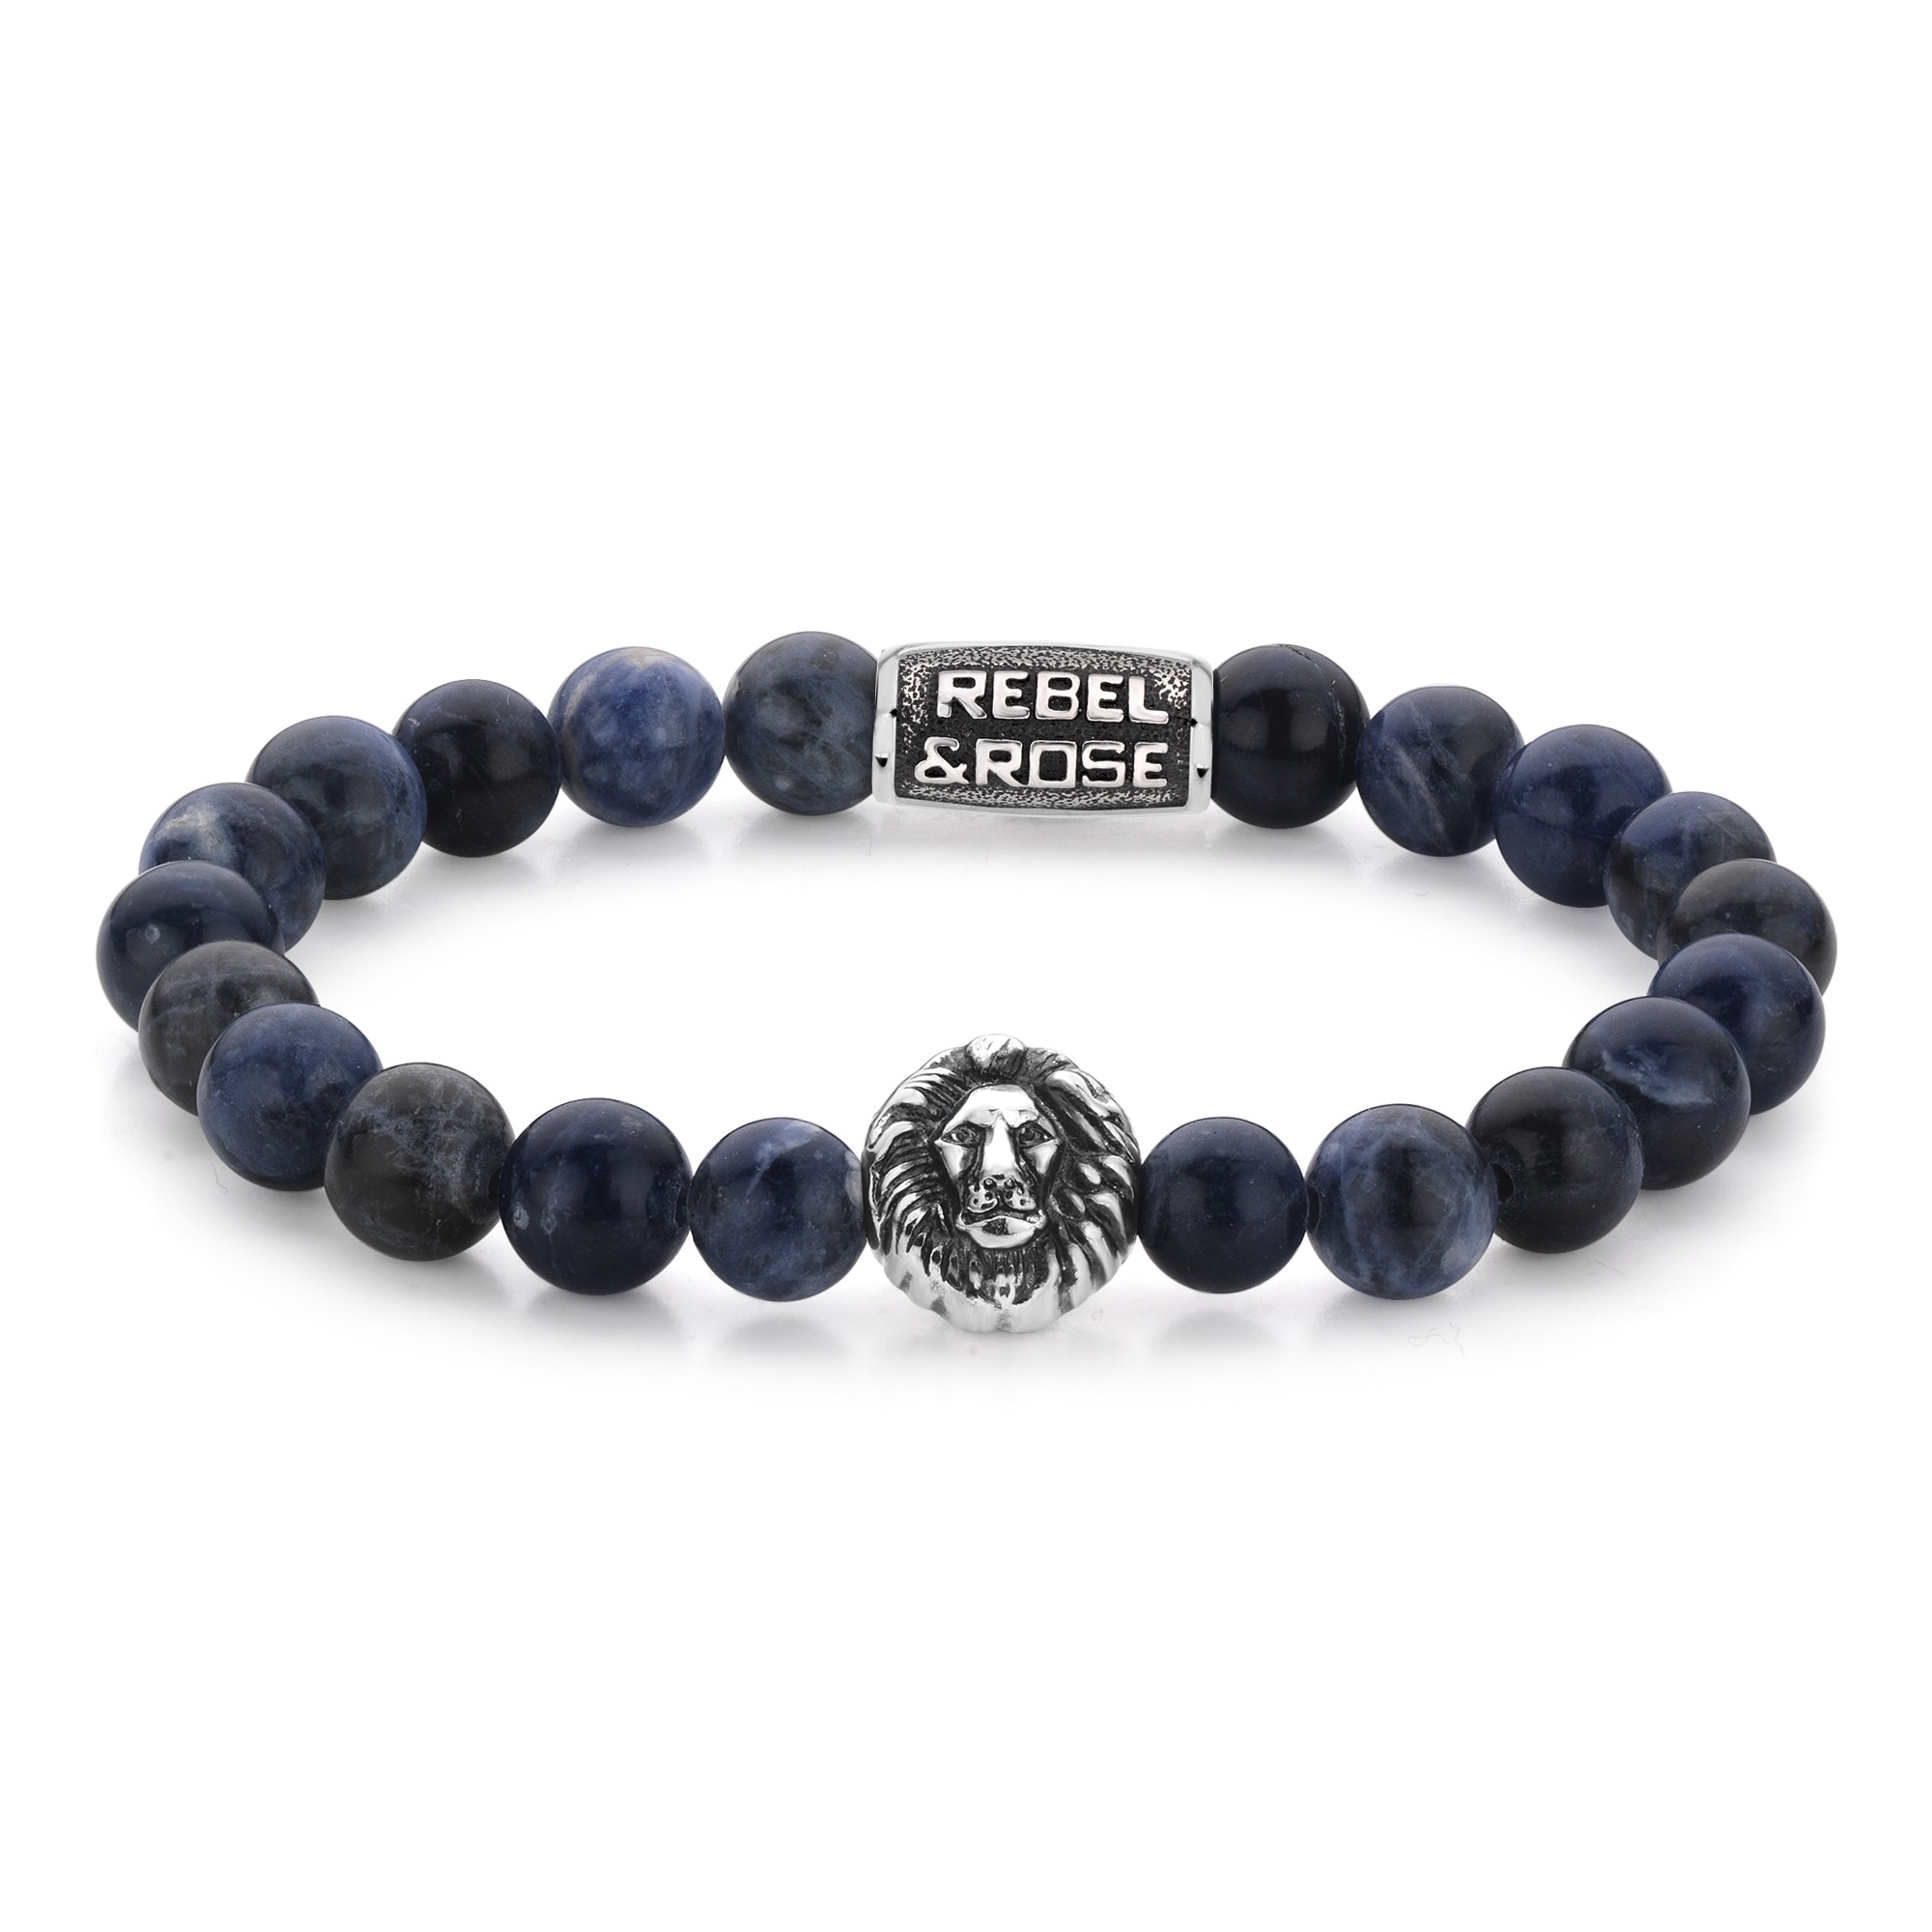 Rebel and Rose RR-8L030-S-M Armband Midnight Blue M 8mm 17.5